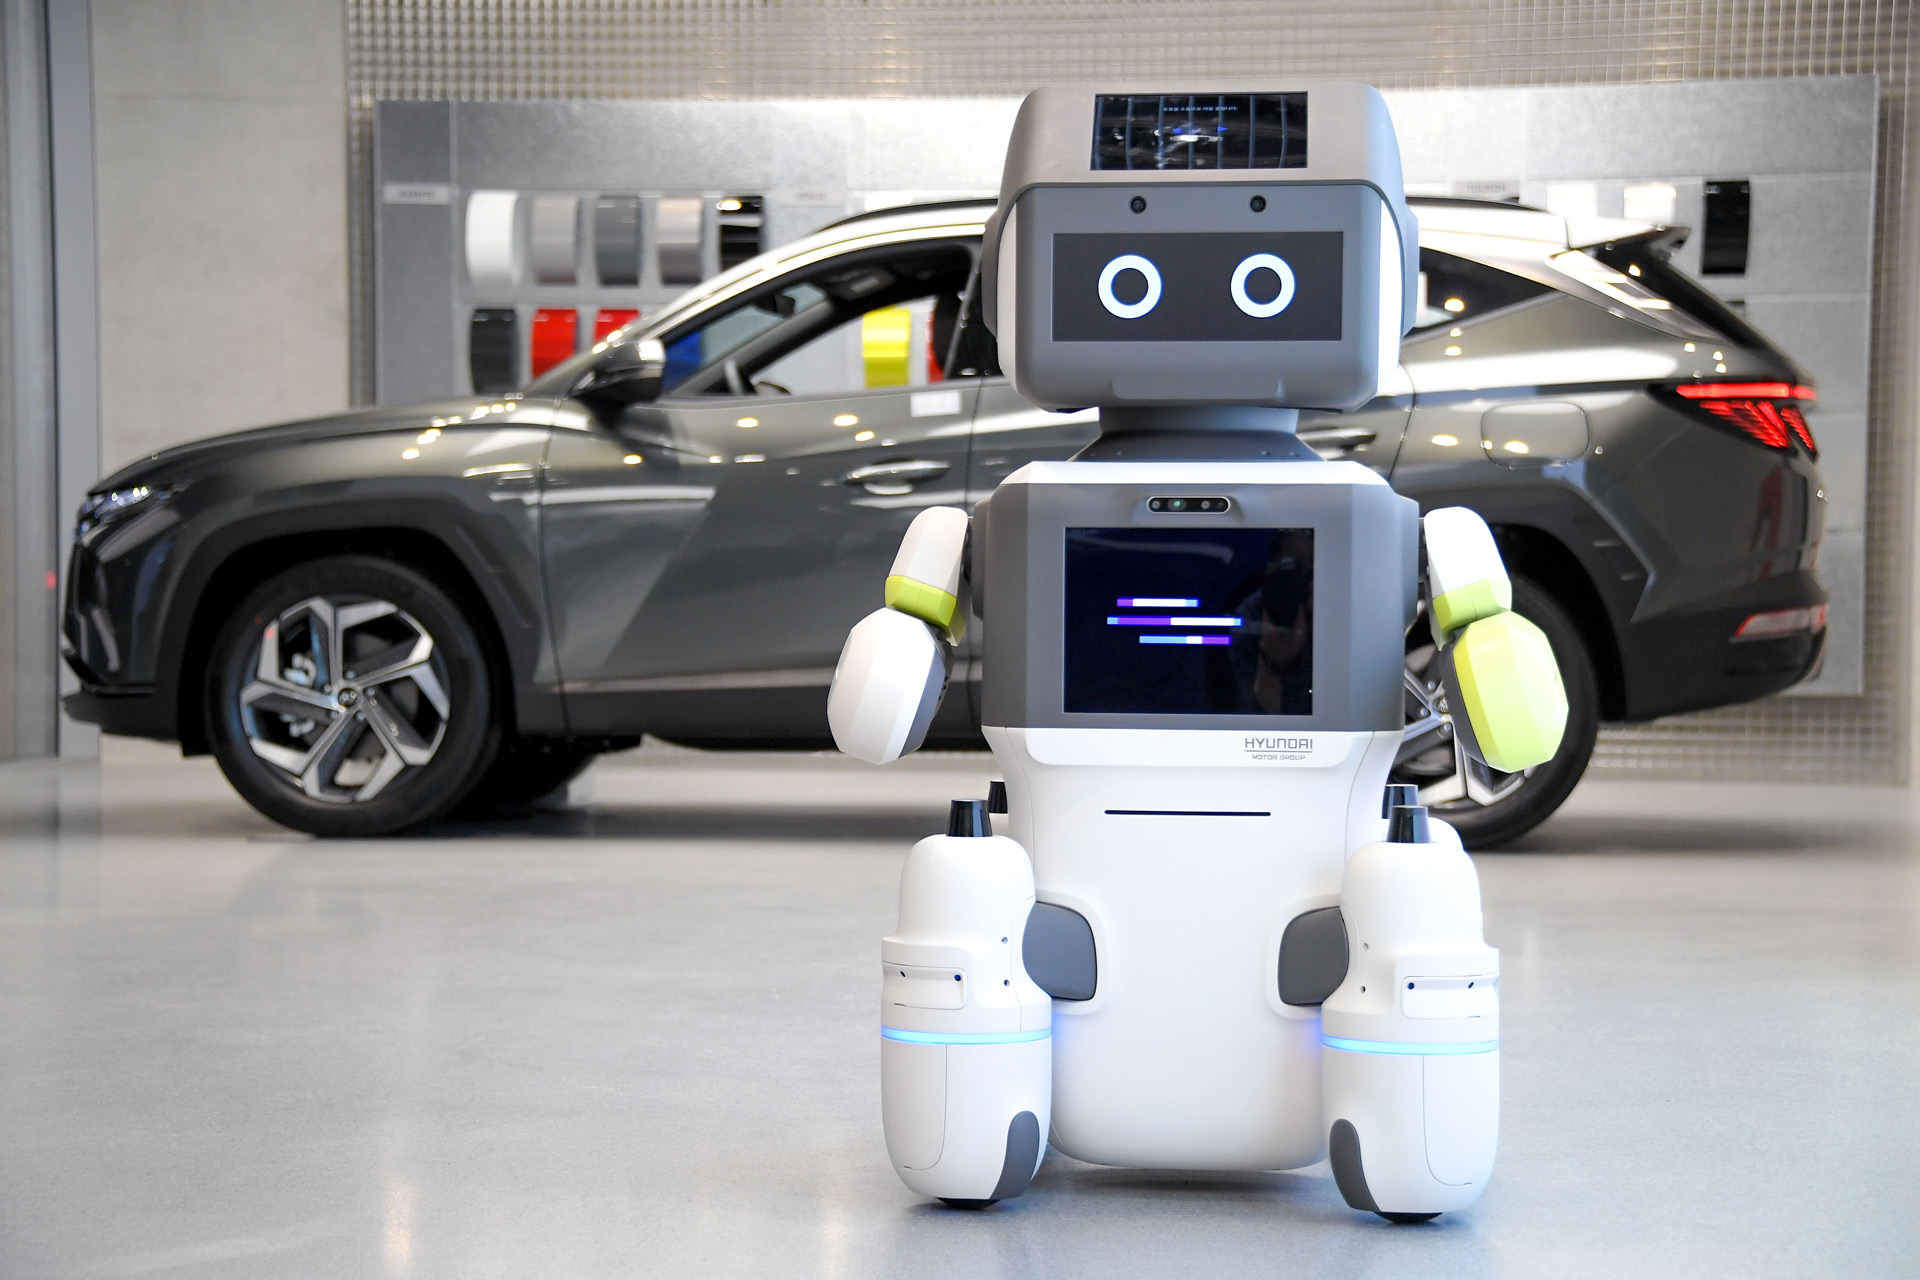 Hyundai's DAL-e robot assistant may be working at your local dealership soon